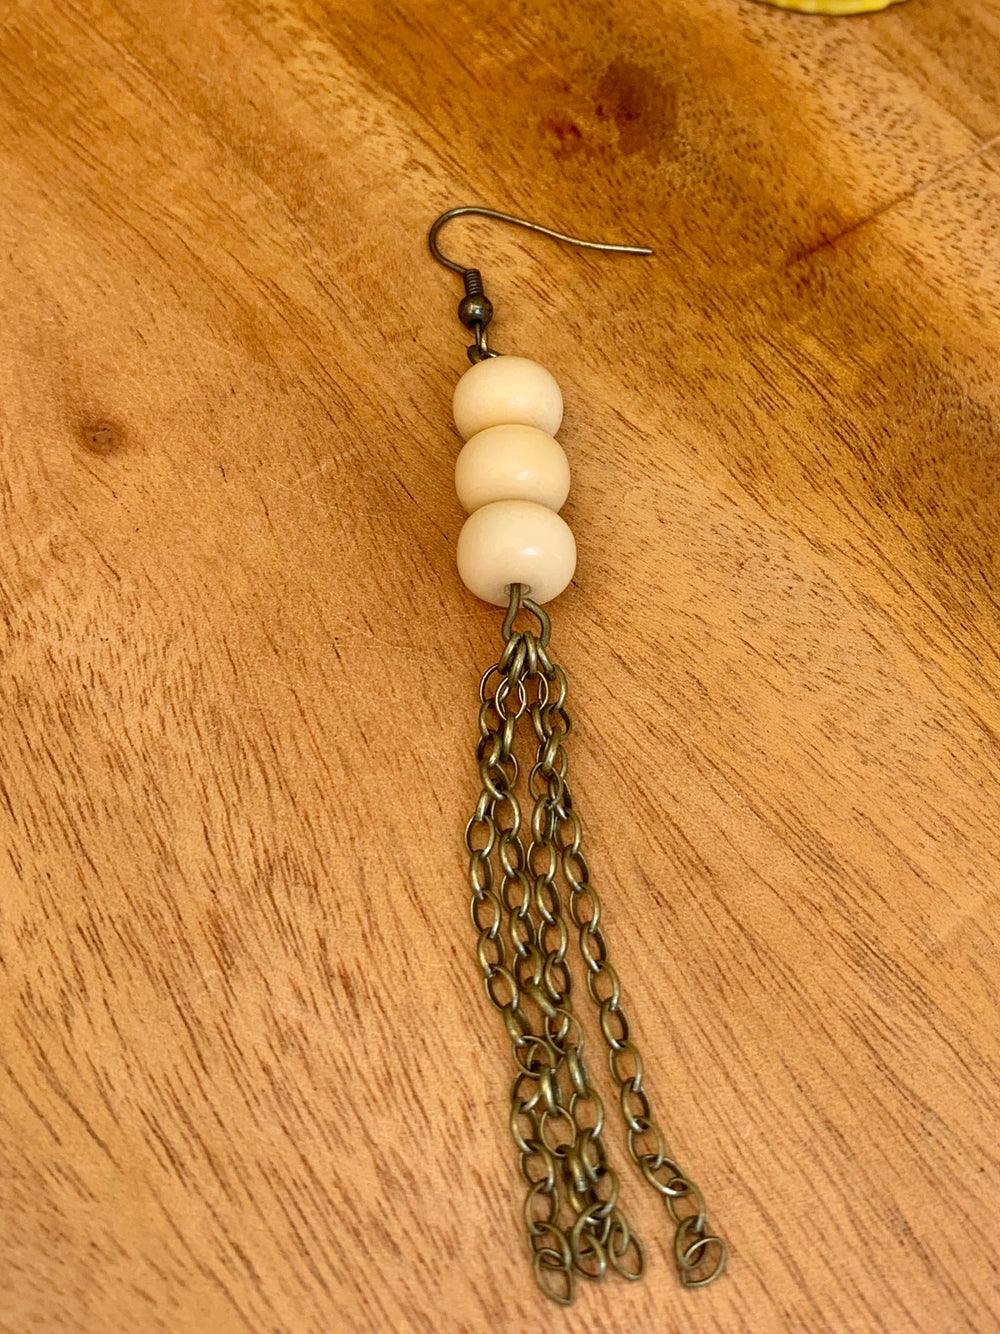 Tagua Ball Tassel Earrings from The Geometrix Collection by Dunamis from Ecuador